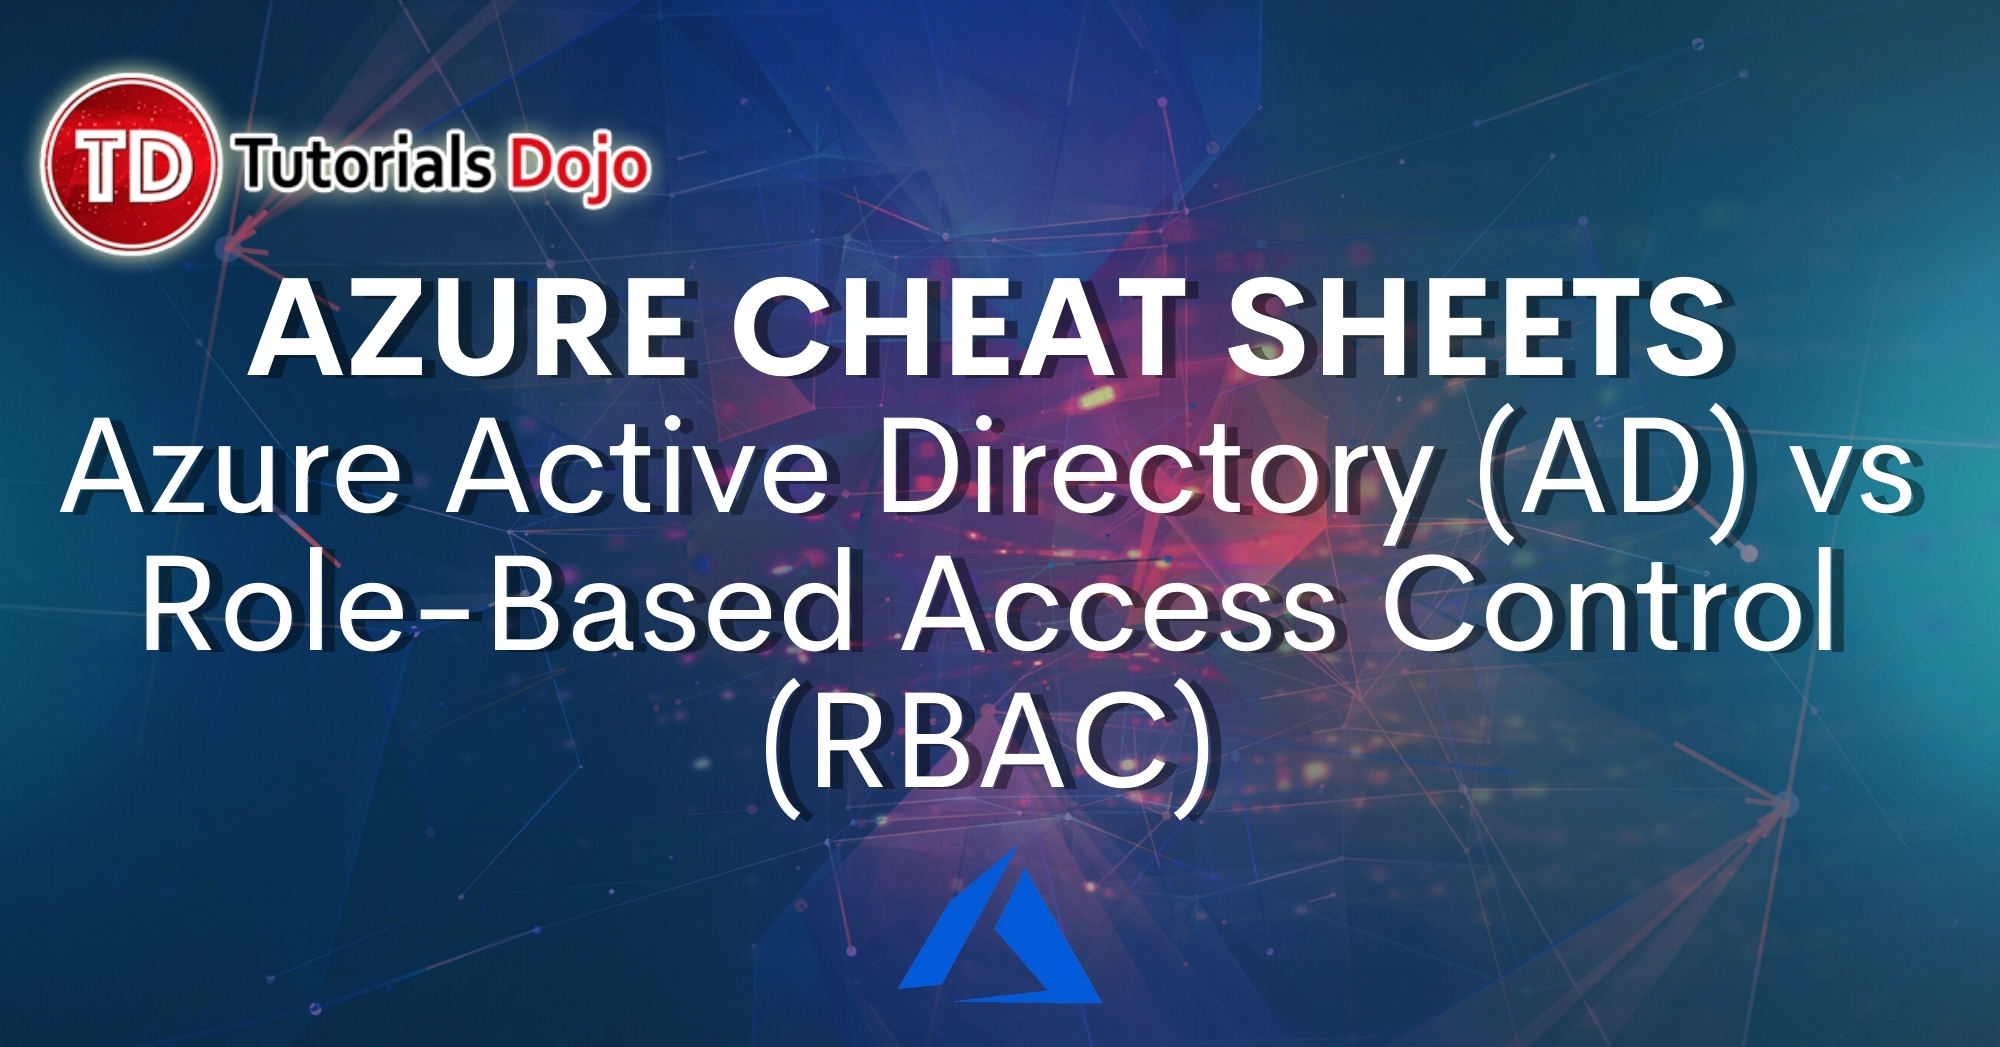 Azure Active Directory (AD) vs Role-Based Access Control (RBAC)